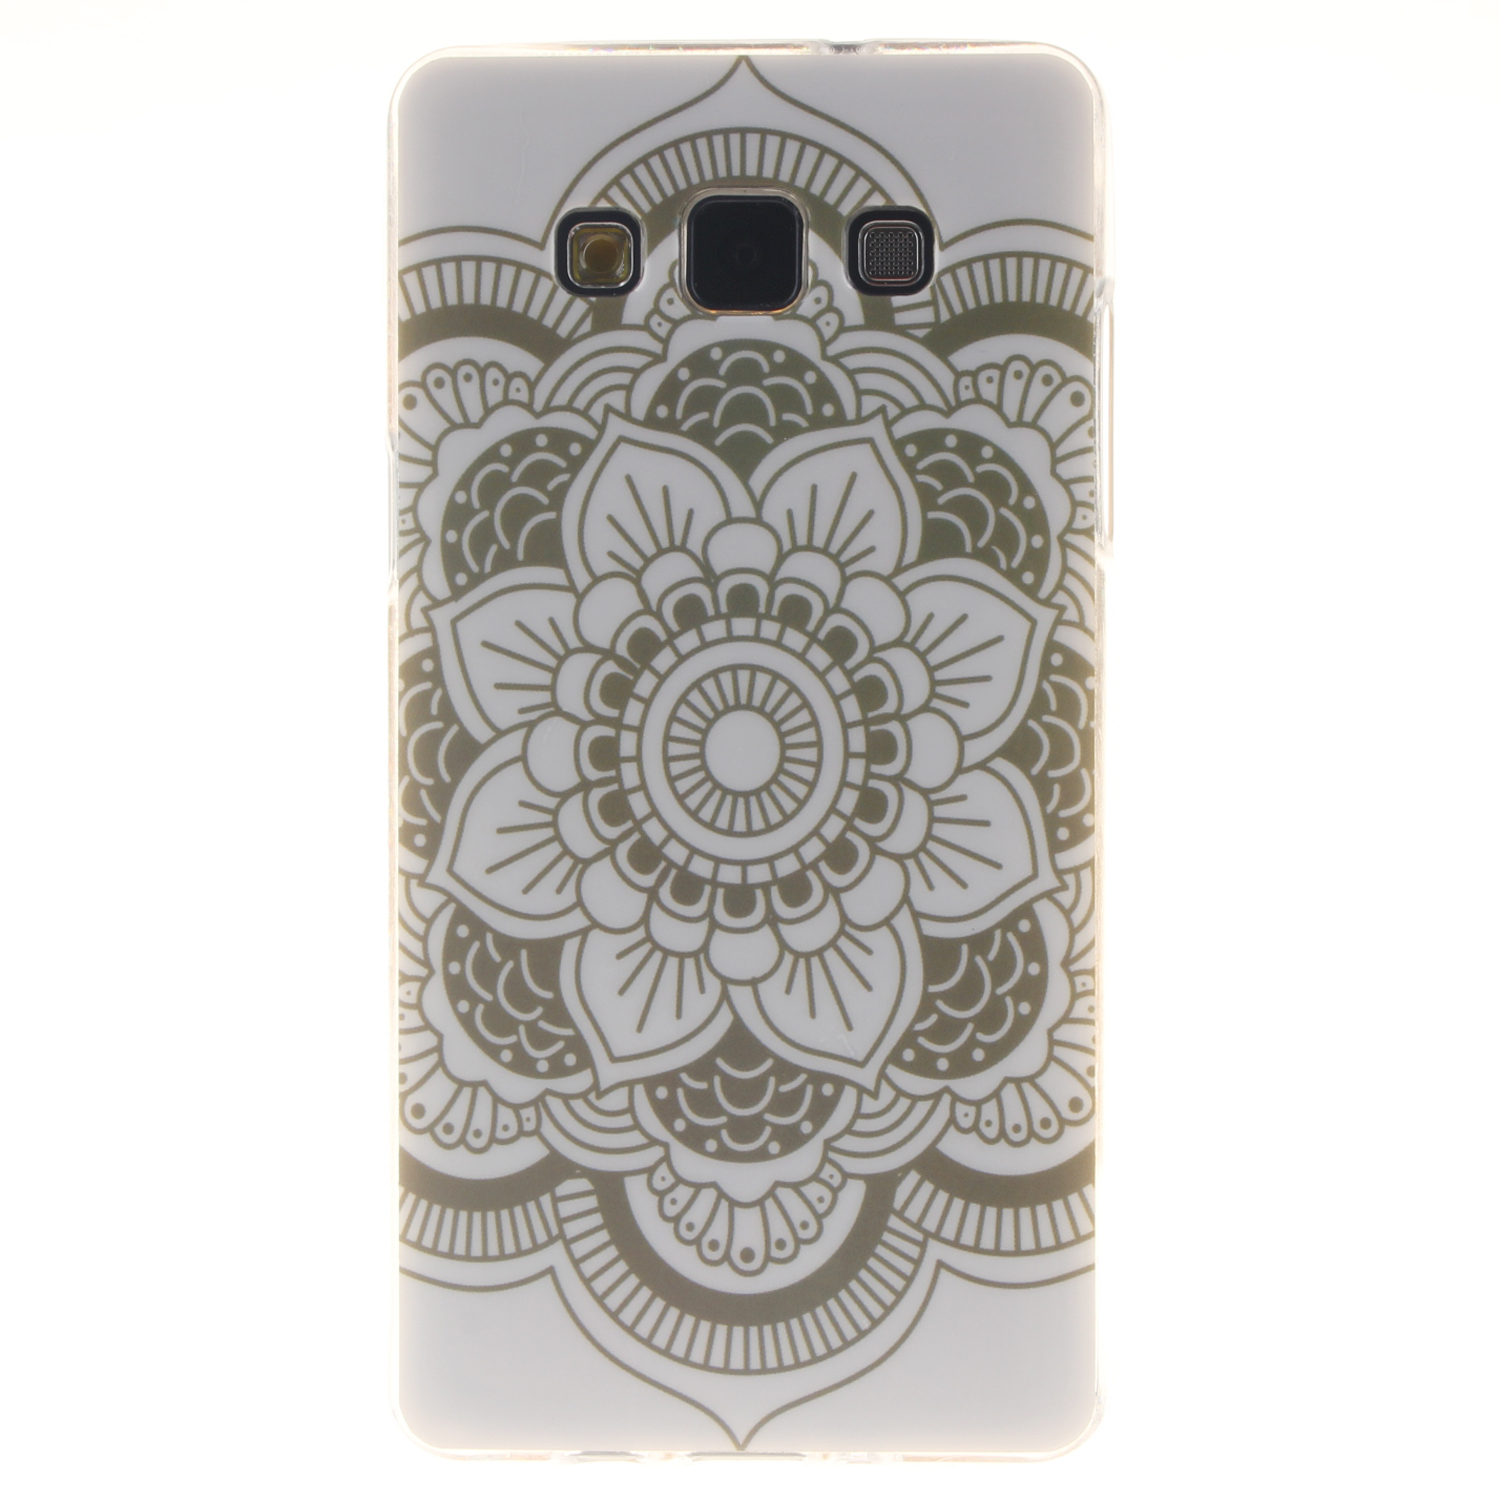 Beauty Diverse Pattern Anti-proof Soft TPU Phone Case For Samsung Galaxy A3 2016 A5 2016 Cases A3 A5 2015 Silicon Case Cover